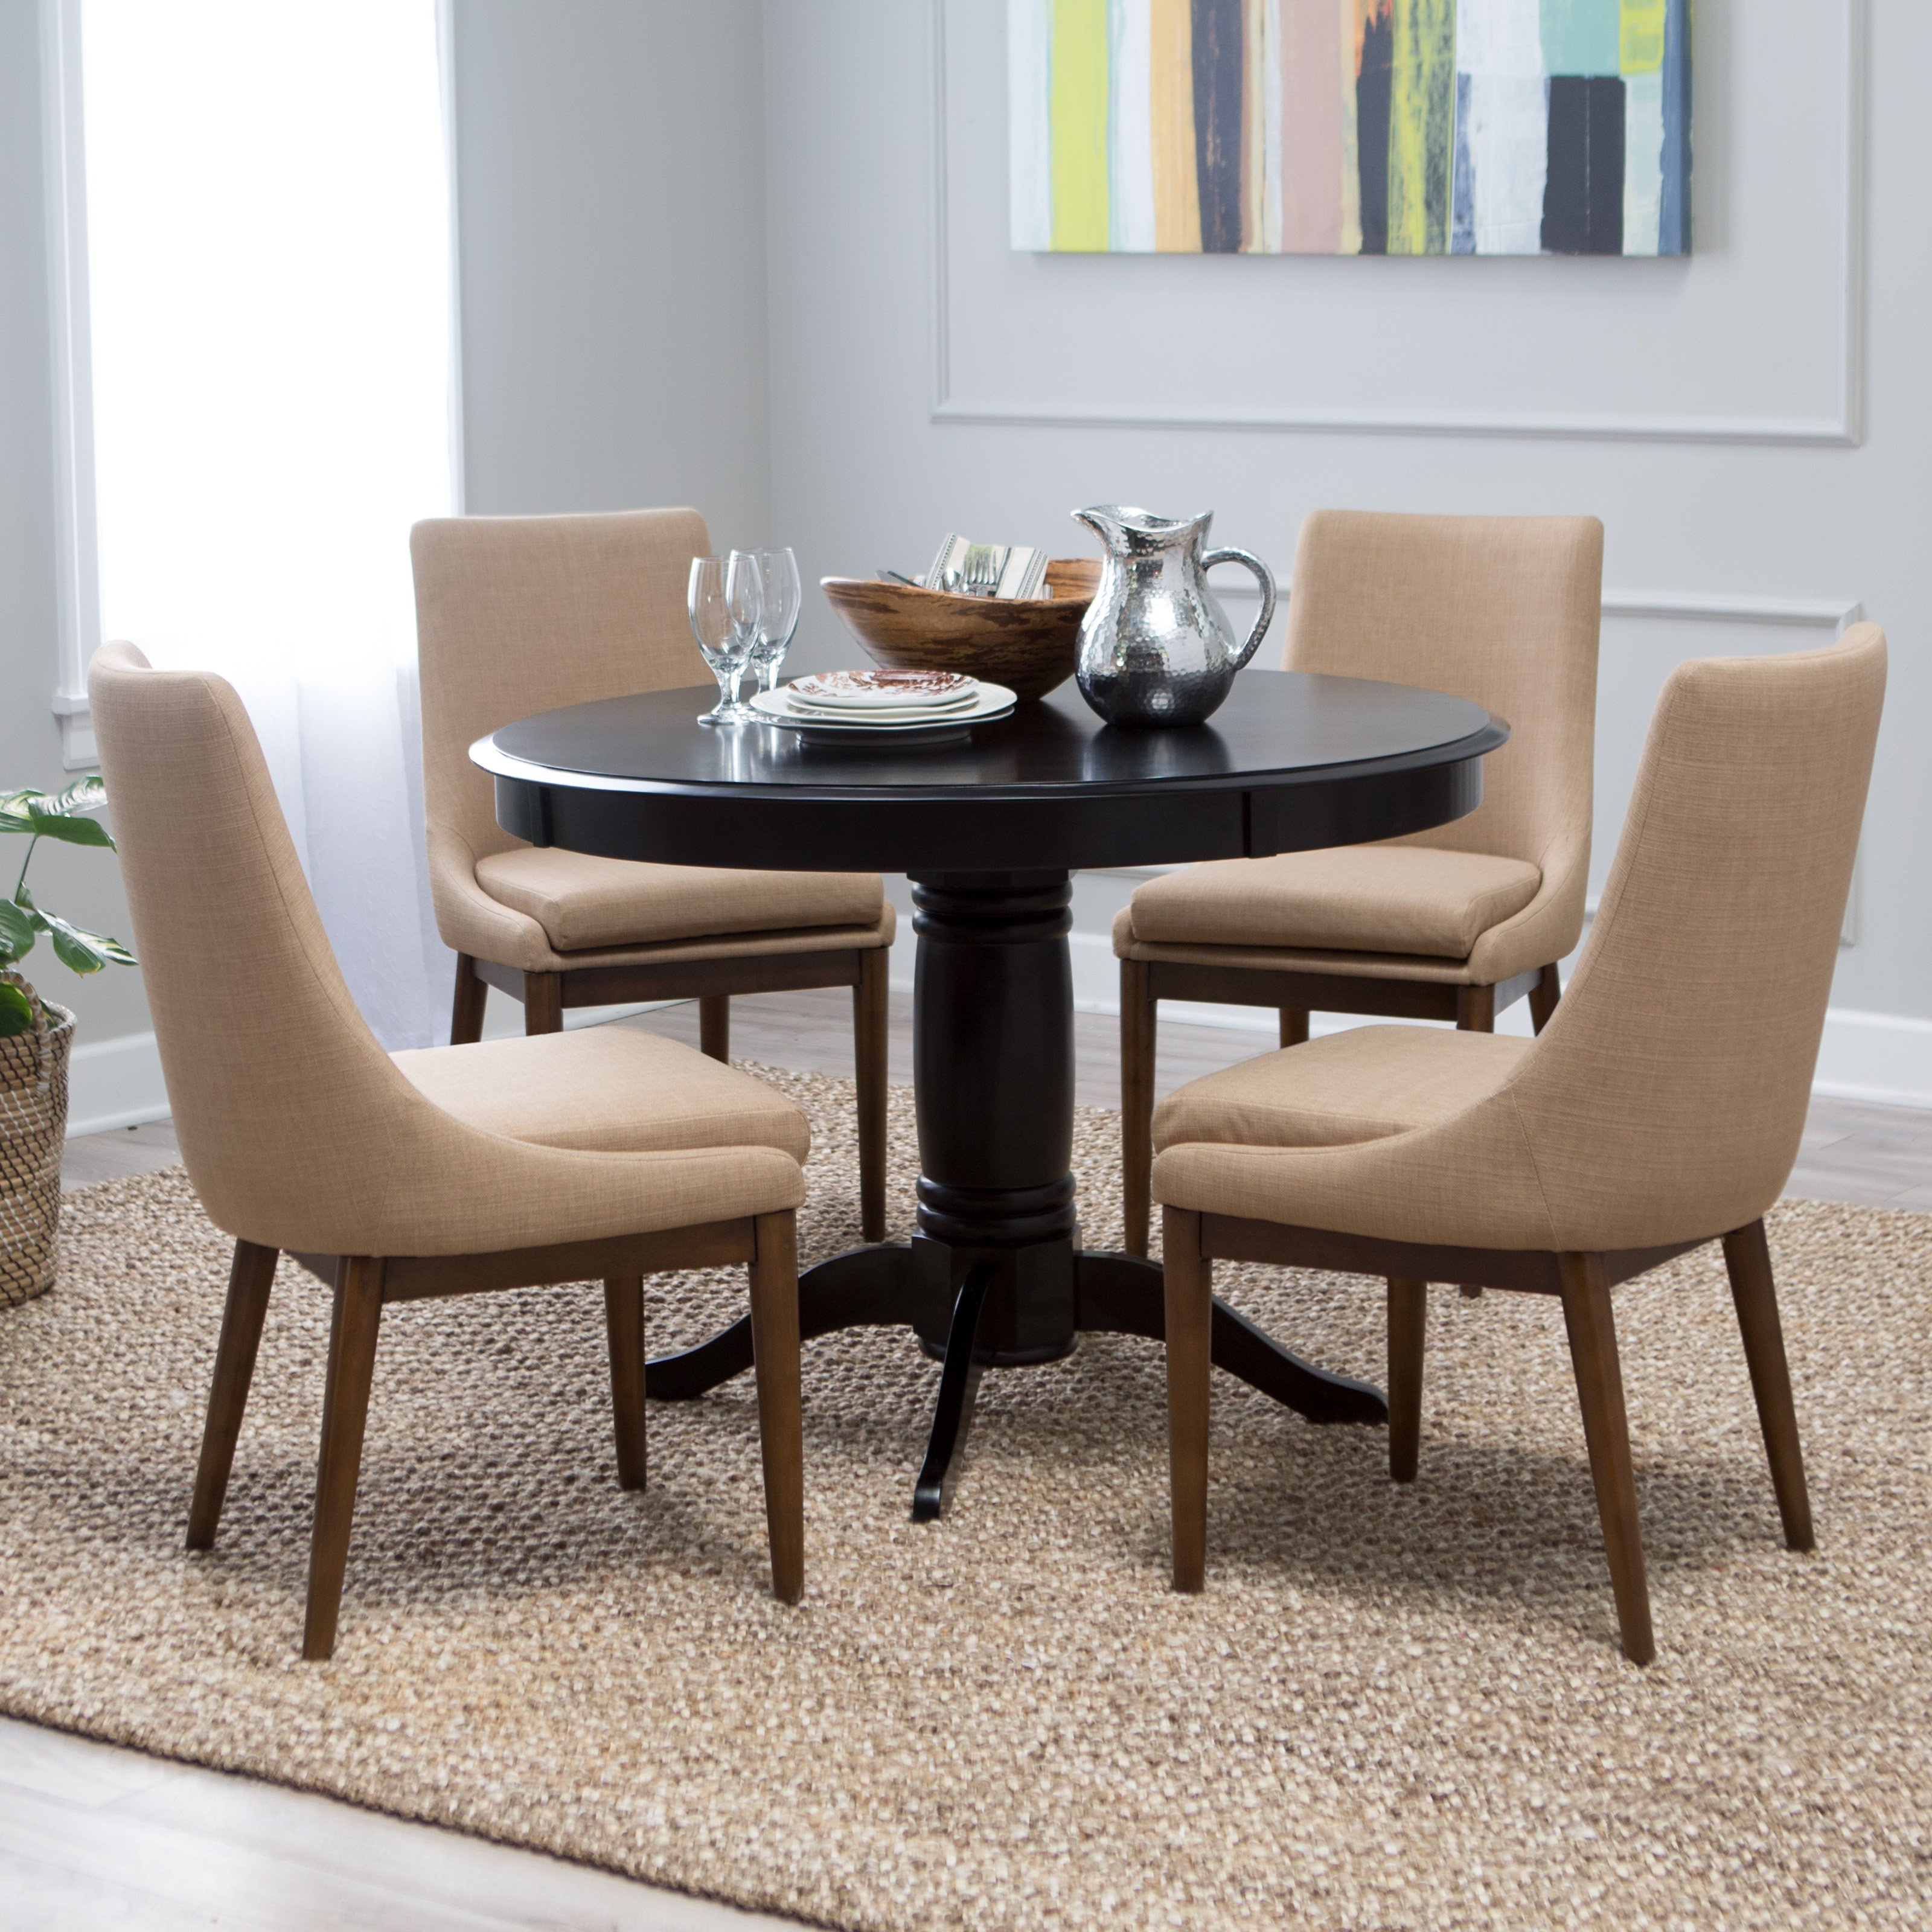 Belham Living Spencer Round Pedestal Dining Table Black by